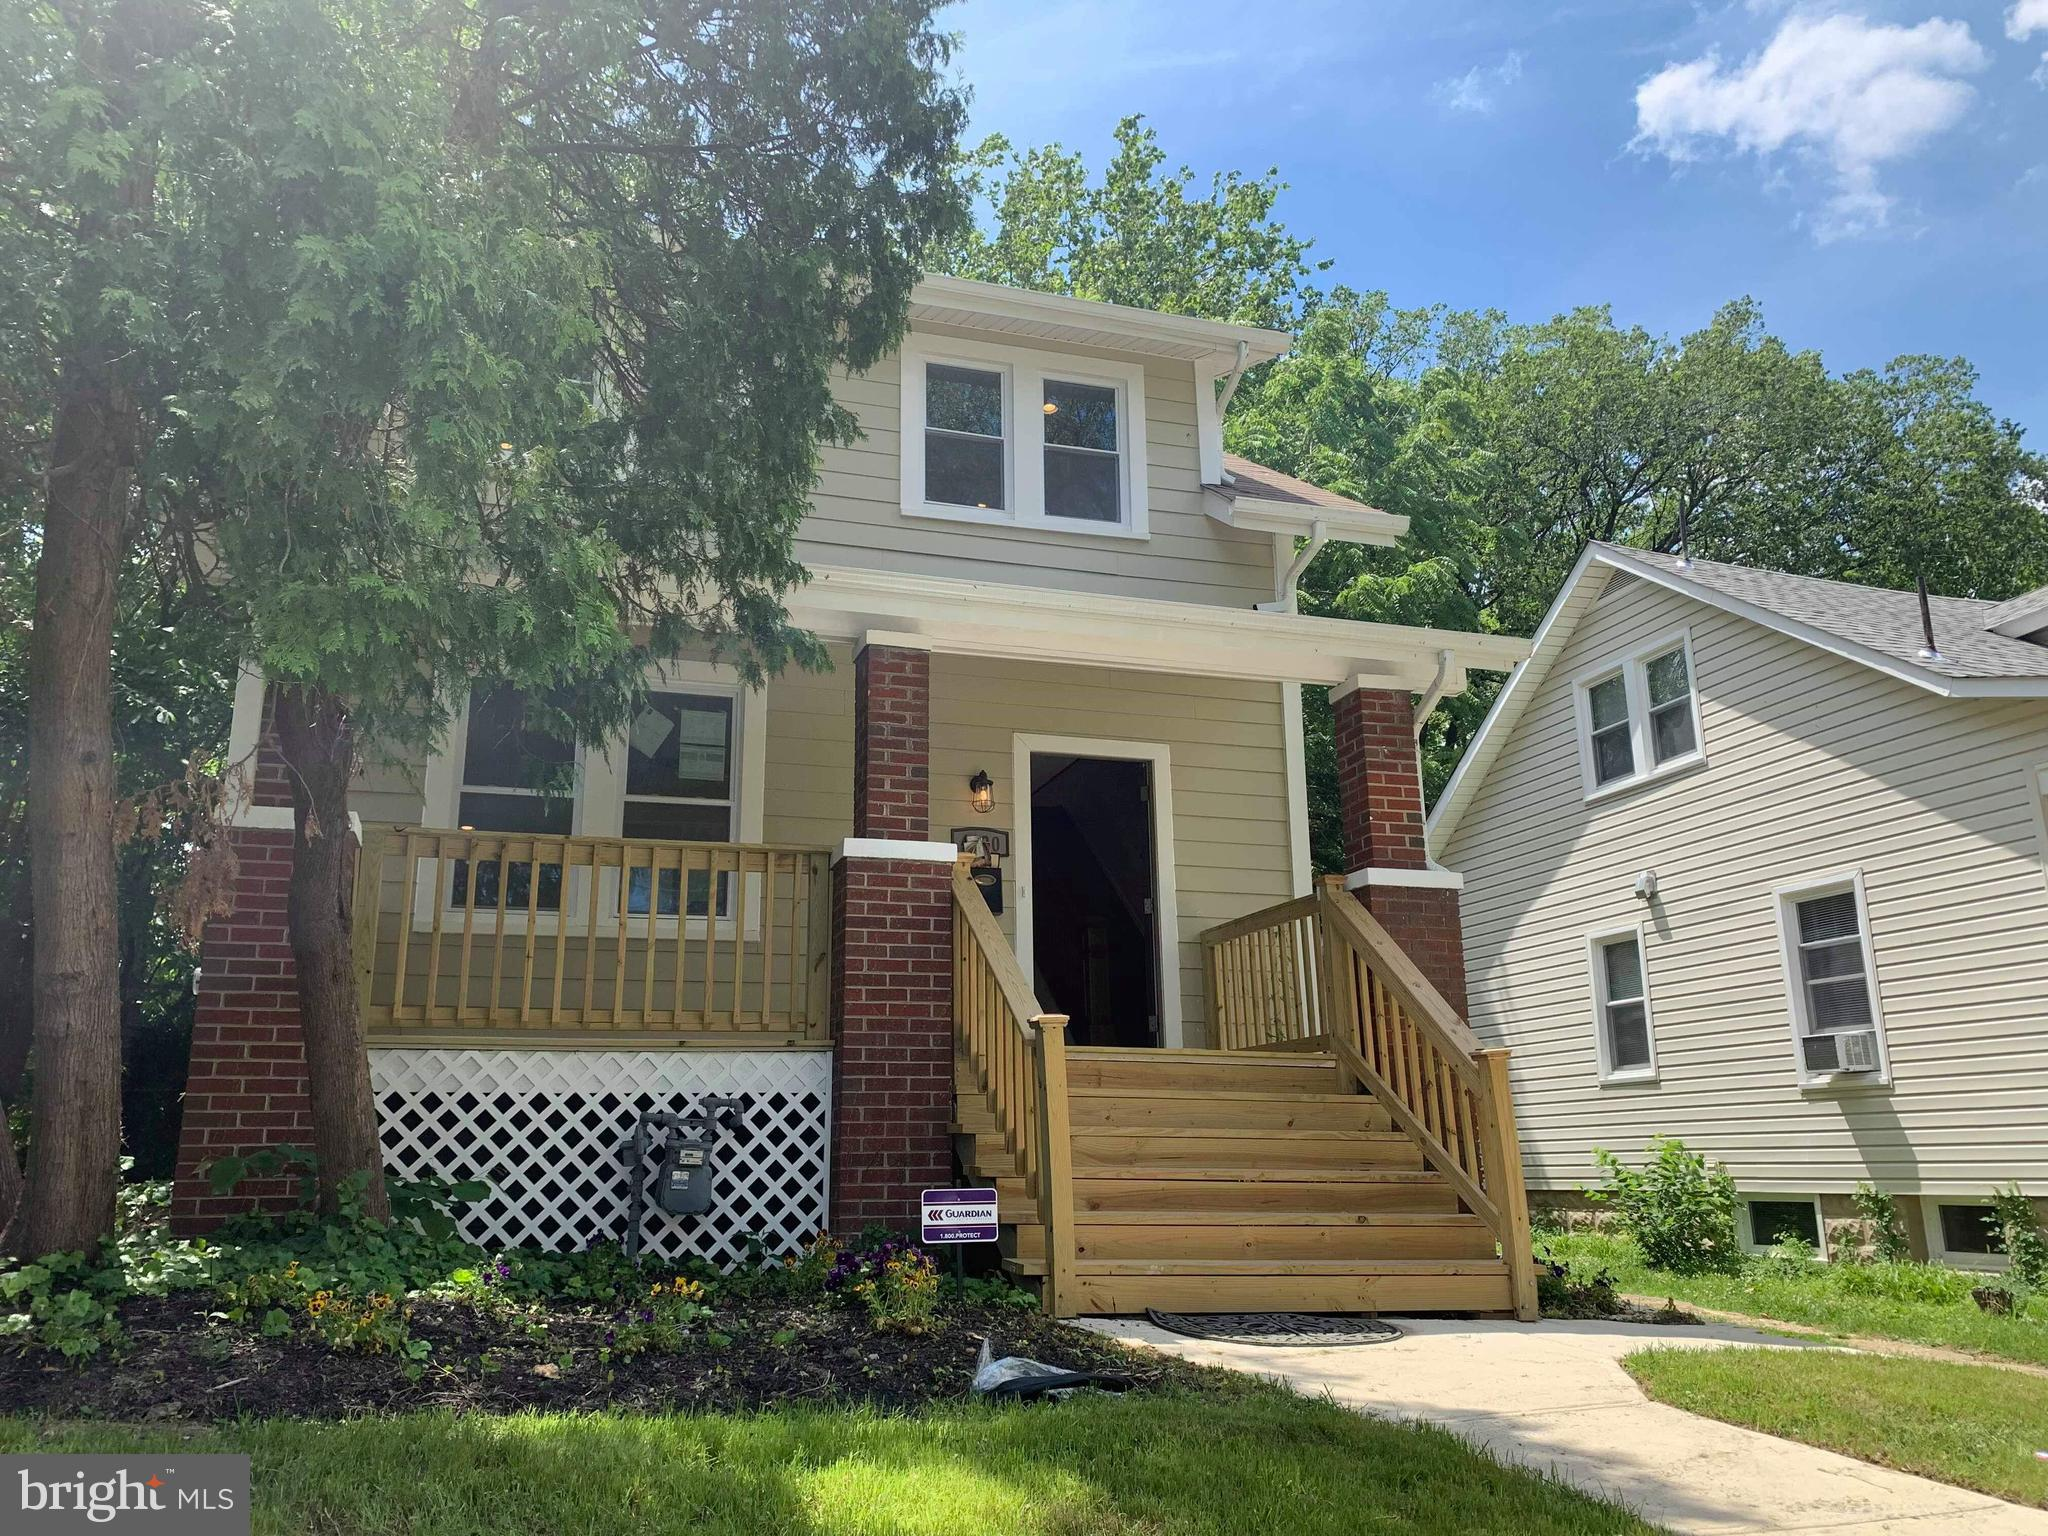 4220 31ST STREET, MOUNT RAINIER, MD 20712